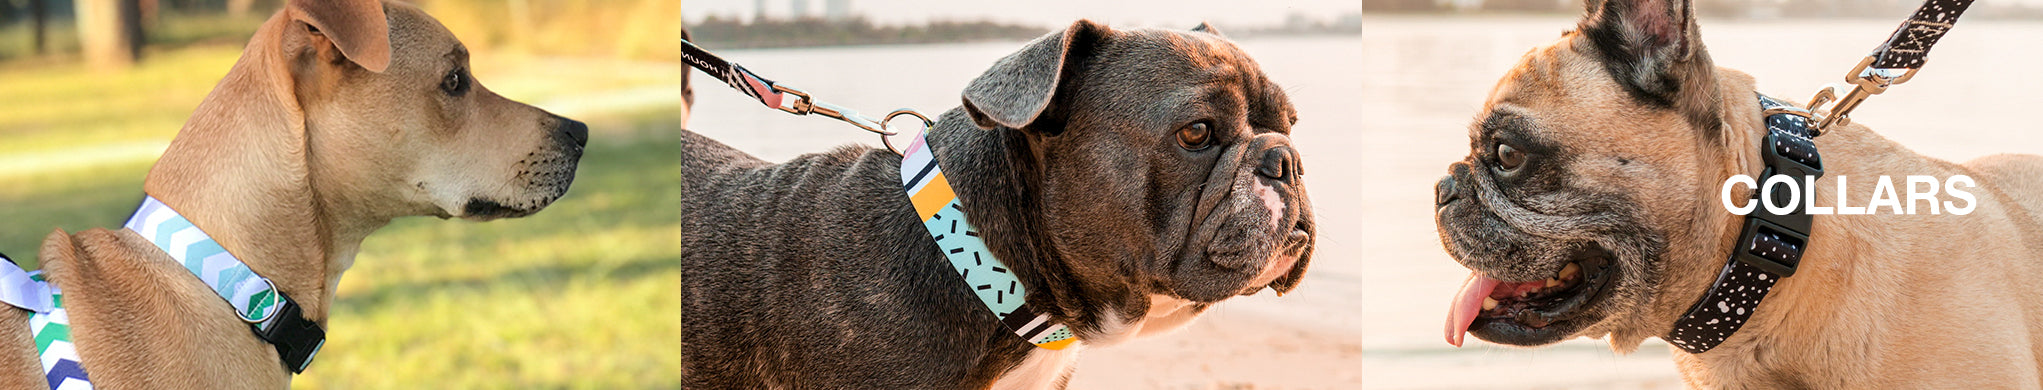 A Twiggy Dog Collar (featuring a matching harness) from the